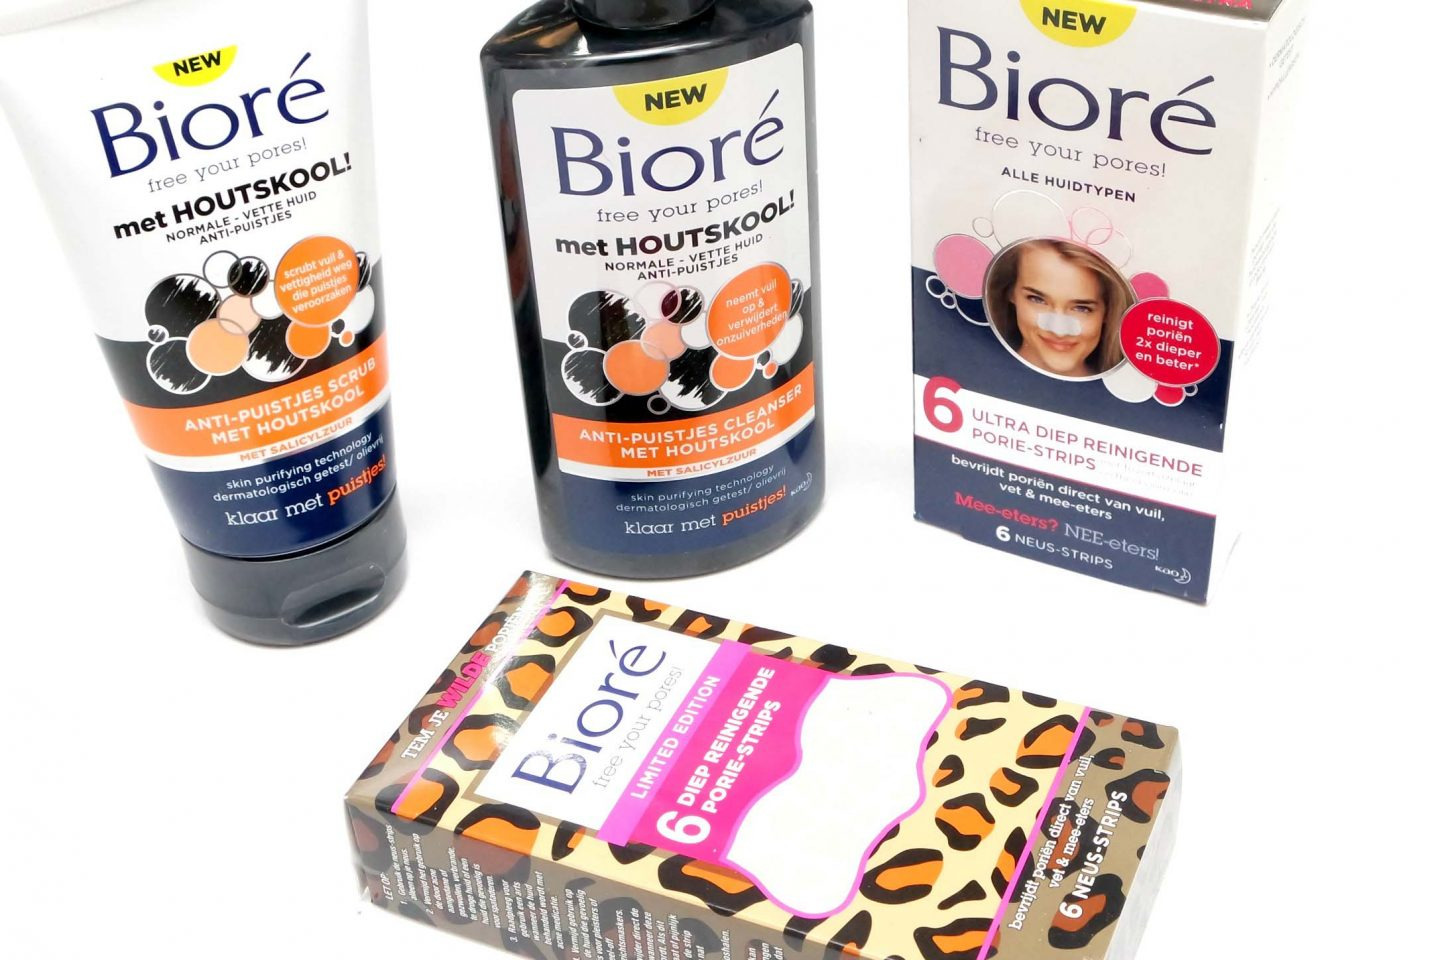 Bioré Acne Clearing Products Review